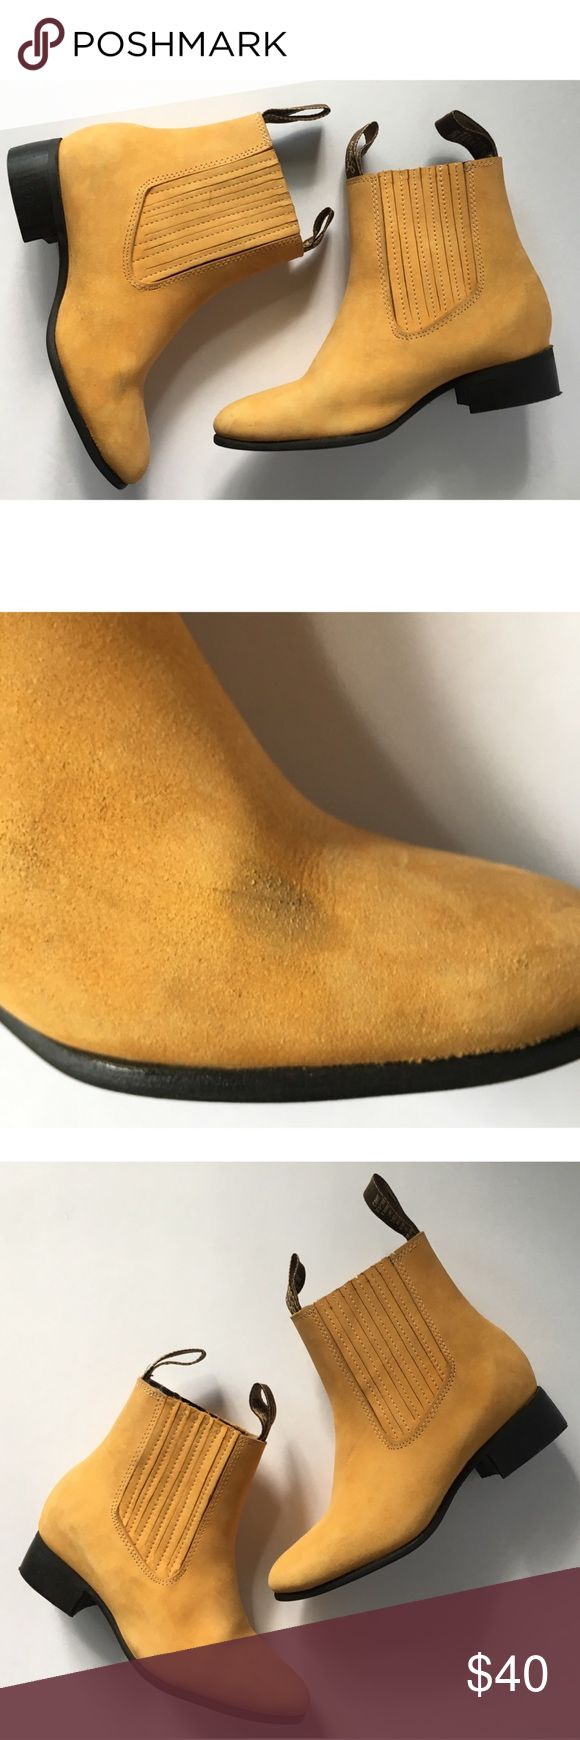 Double Pull Up Tab Womens Flat Ankle Boot Size 5.5 Timberland color/ Suede Leather, Leather insole (removable cushion heel insole), flexible shaft, hand stitched pull up straps/ size 5.5. All wear pictured. Shoes Ankle Boots & Booties